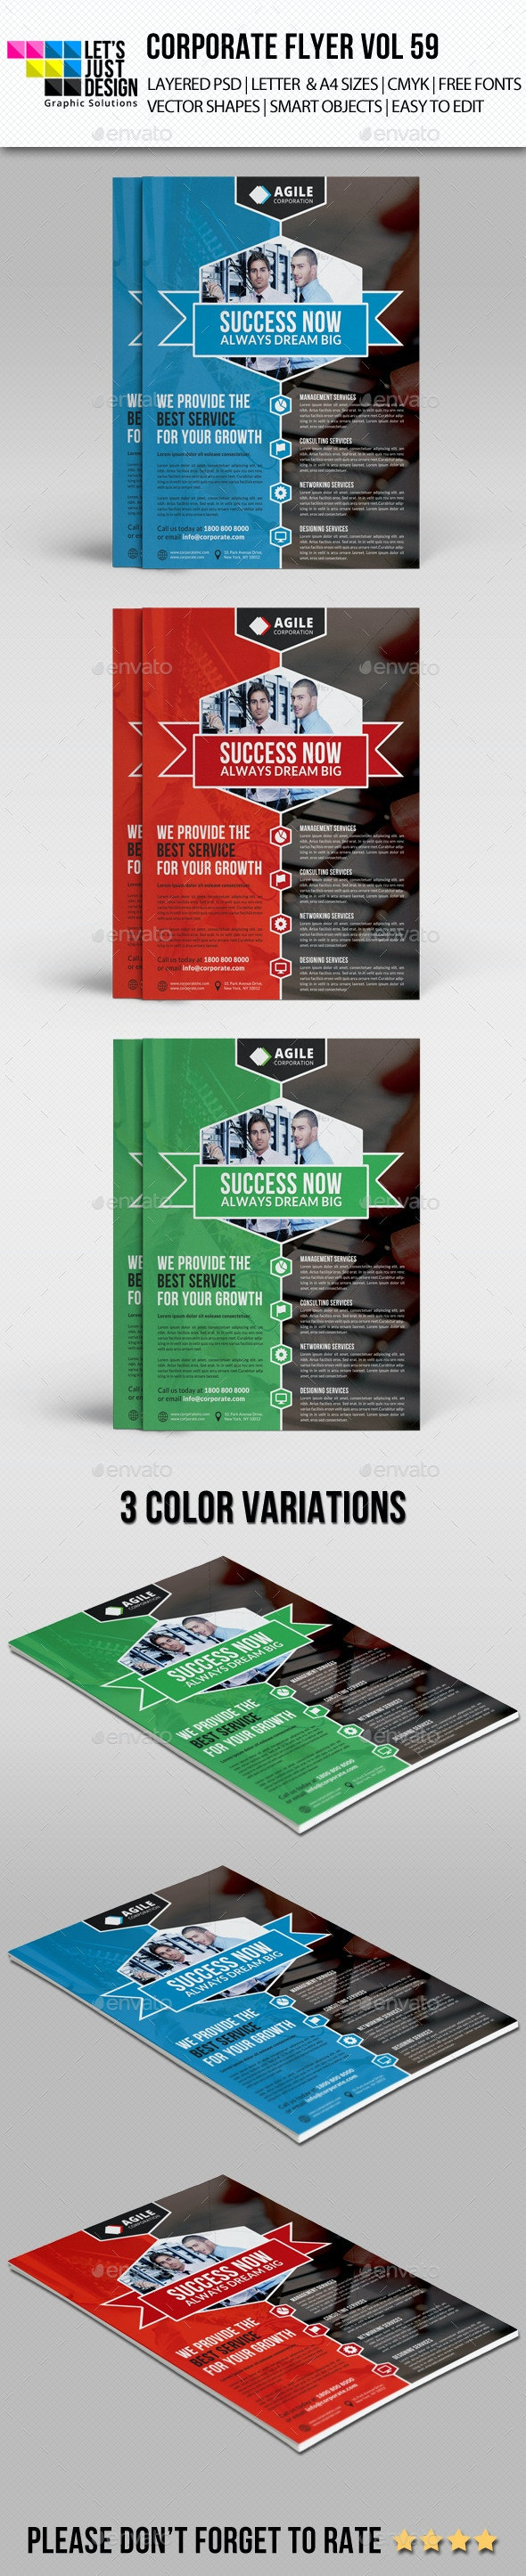 A4 Corporate Flyer Template Vol 59 - Corporate Flyers